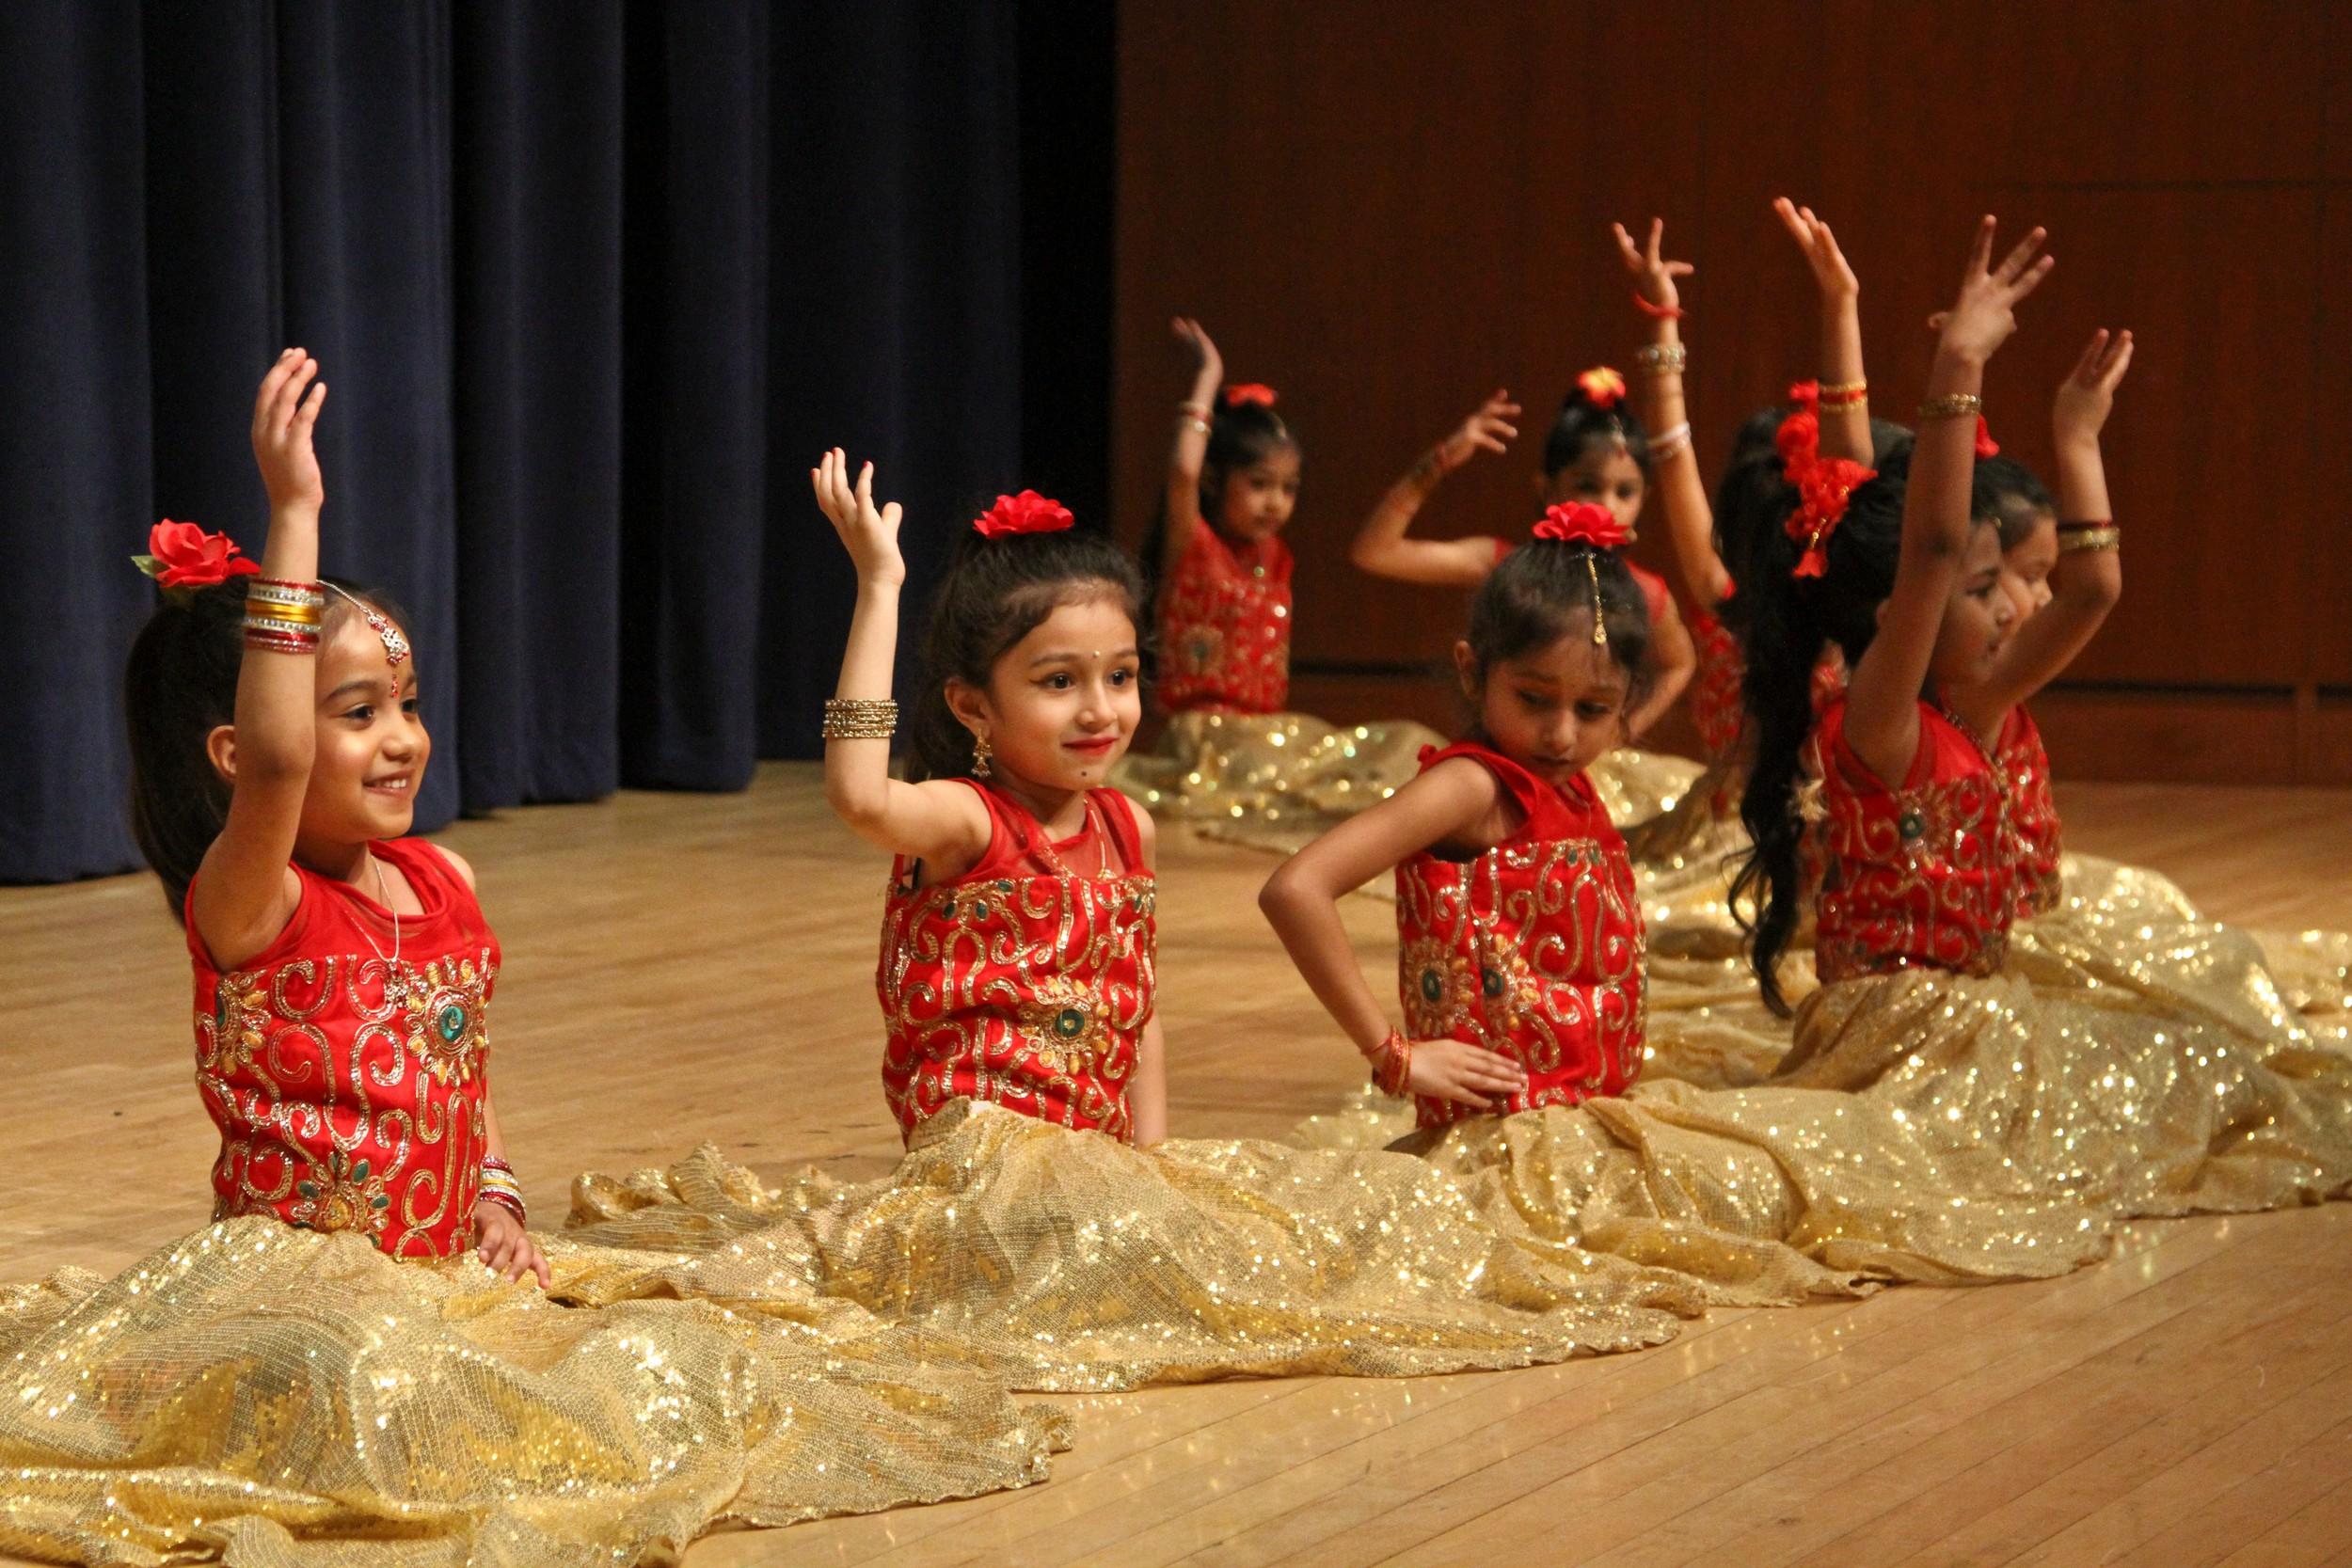 At Children's Day, the Ghagara dance was choreographed by Shilpa Jurani, Arya Dance Academy and performed by Dia, Valentina, Priya, Sumayah, Anaya, Lianna, Ava, Sienna, Jeel, Tanvi, Surya, Neeti, Riya, Aashna Kajal and Maitri. Aashna Kajal, Maitri, Choreographed by Shilpa Jurani, Arya Dance Academy.